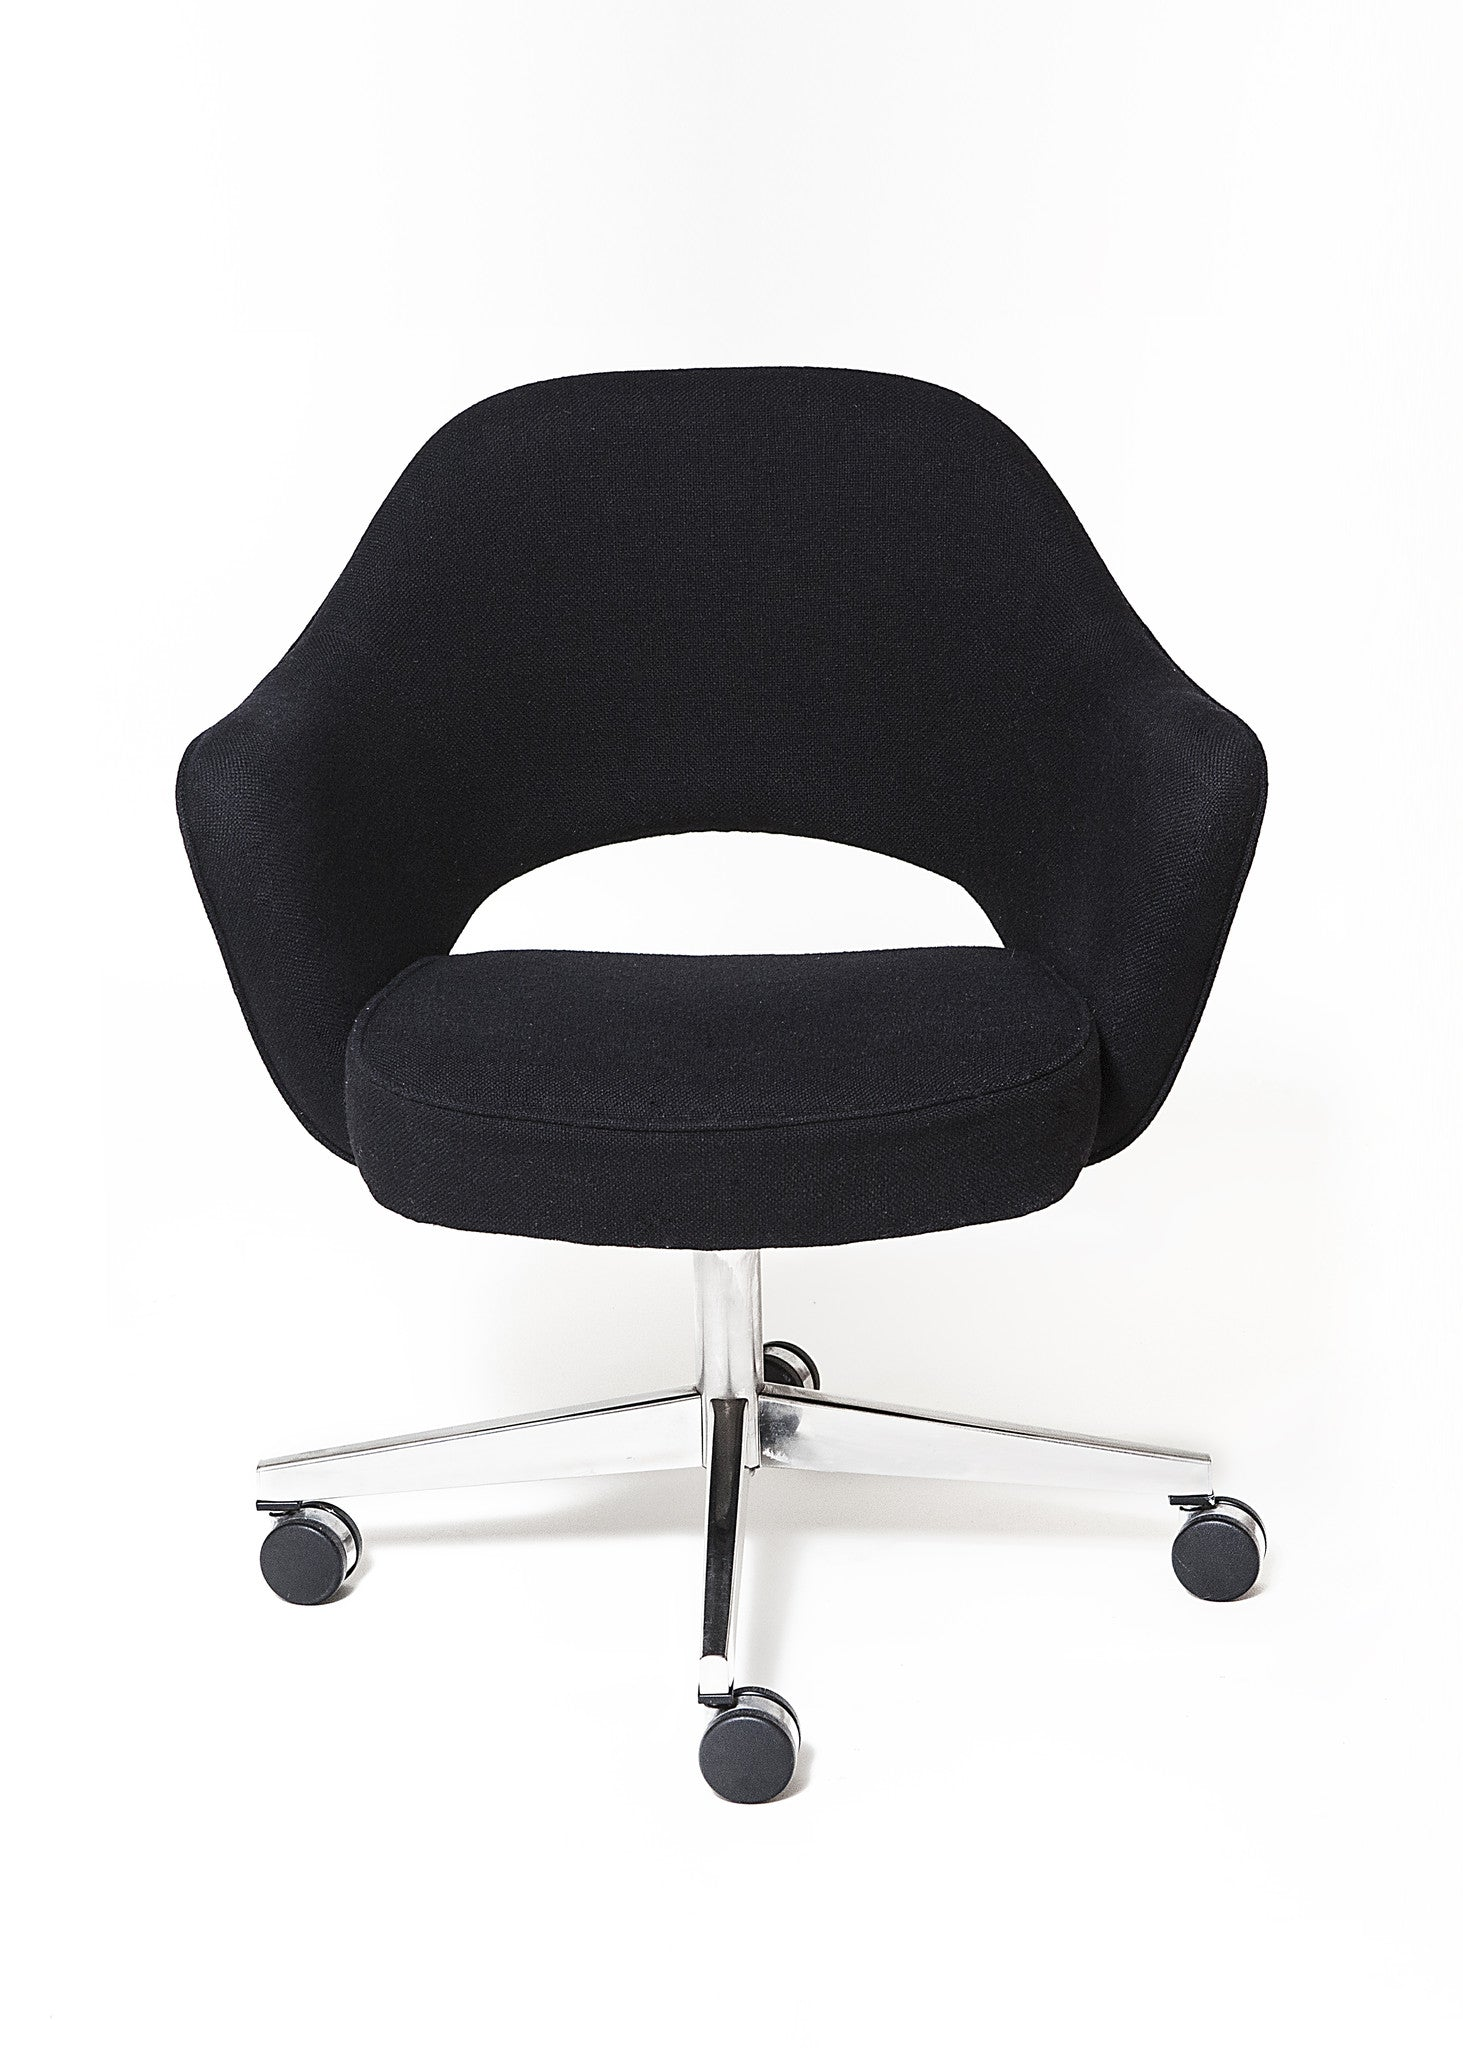 Vintage Eero Saarinen Executive Swivel Chair Upholstered In Black Wool  Weave   City Of Z Design